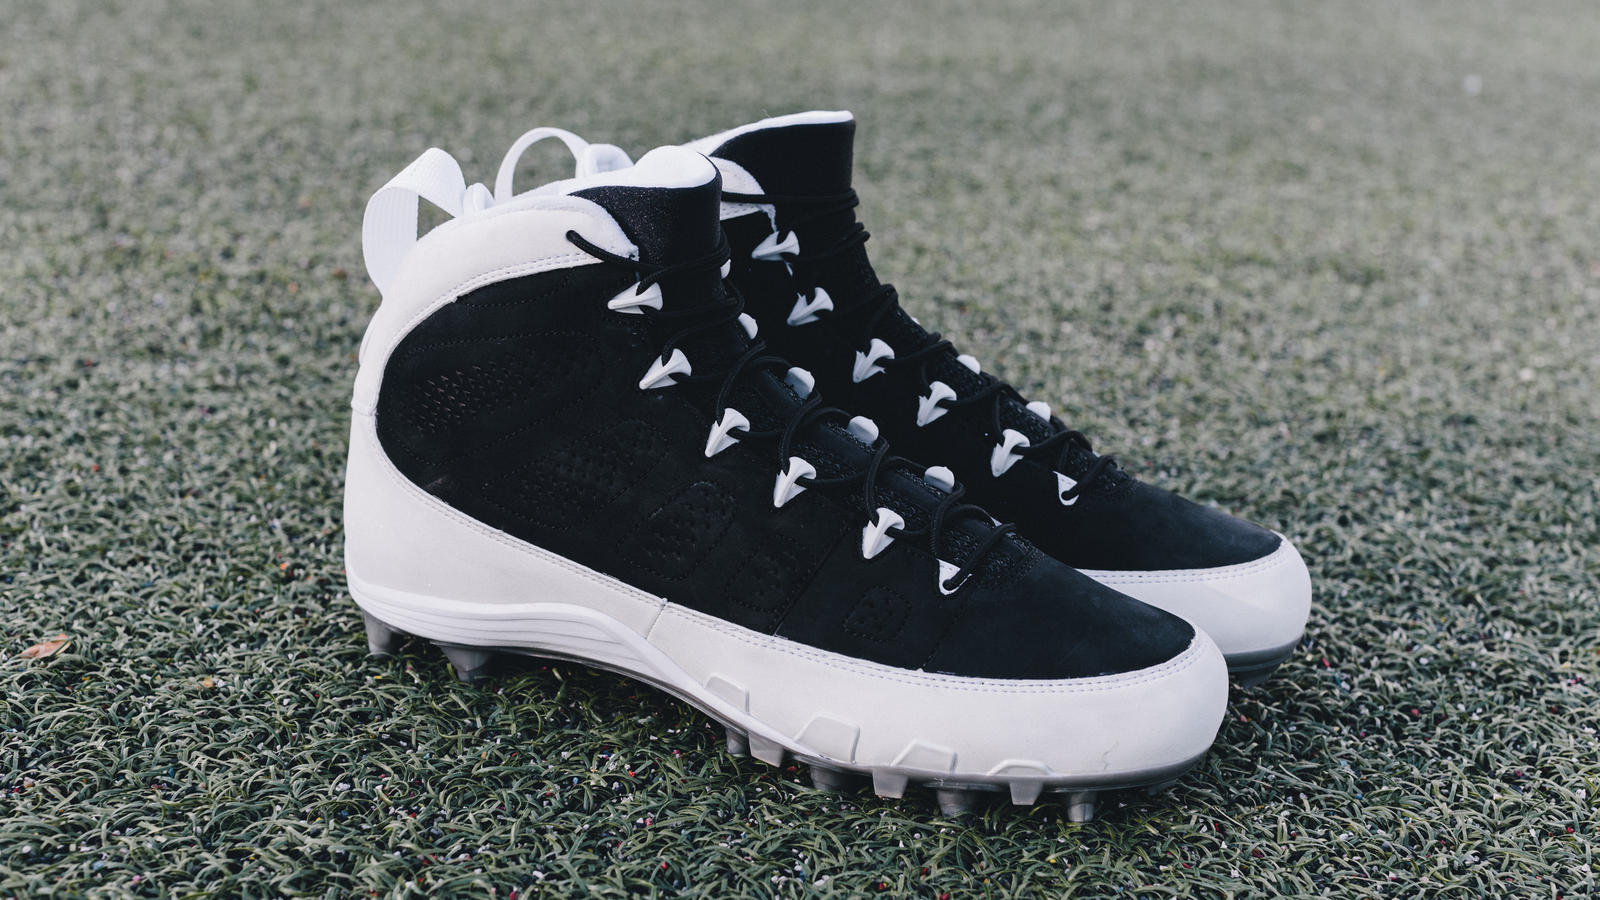 Michael Crabtree Air Jordan IX PE Cleat